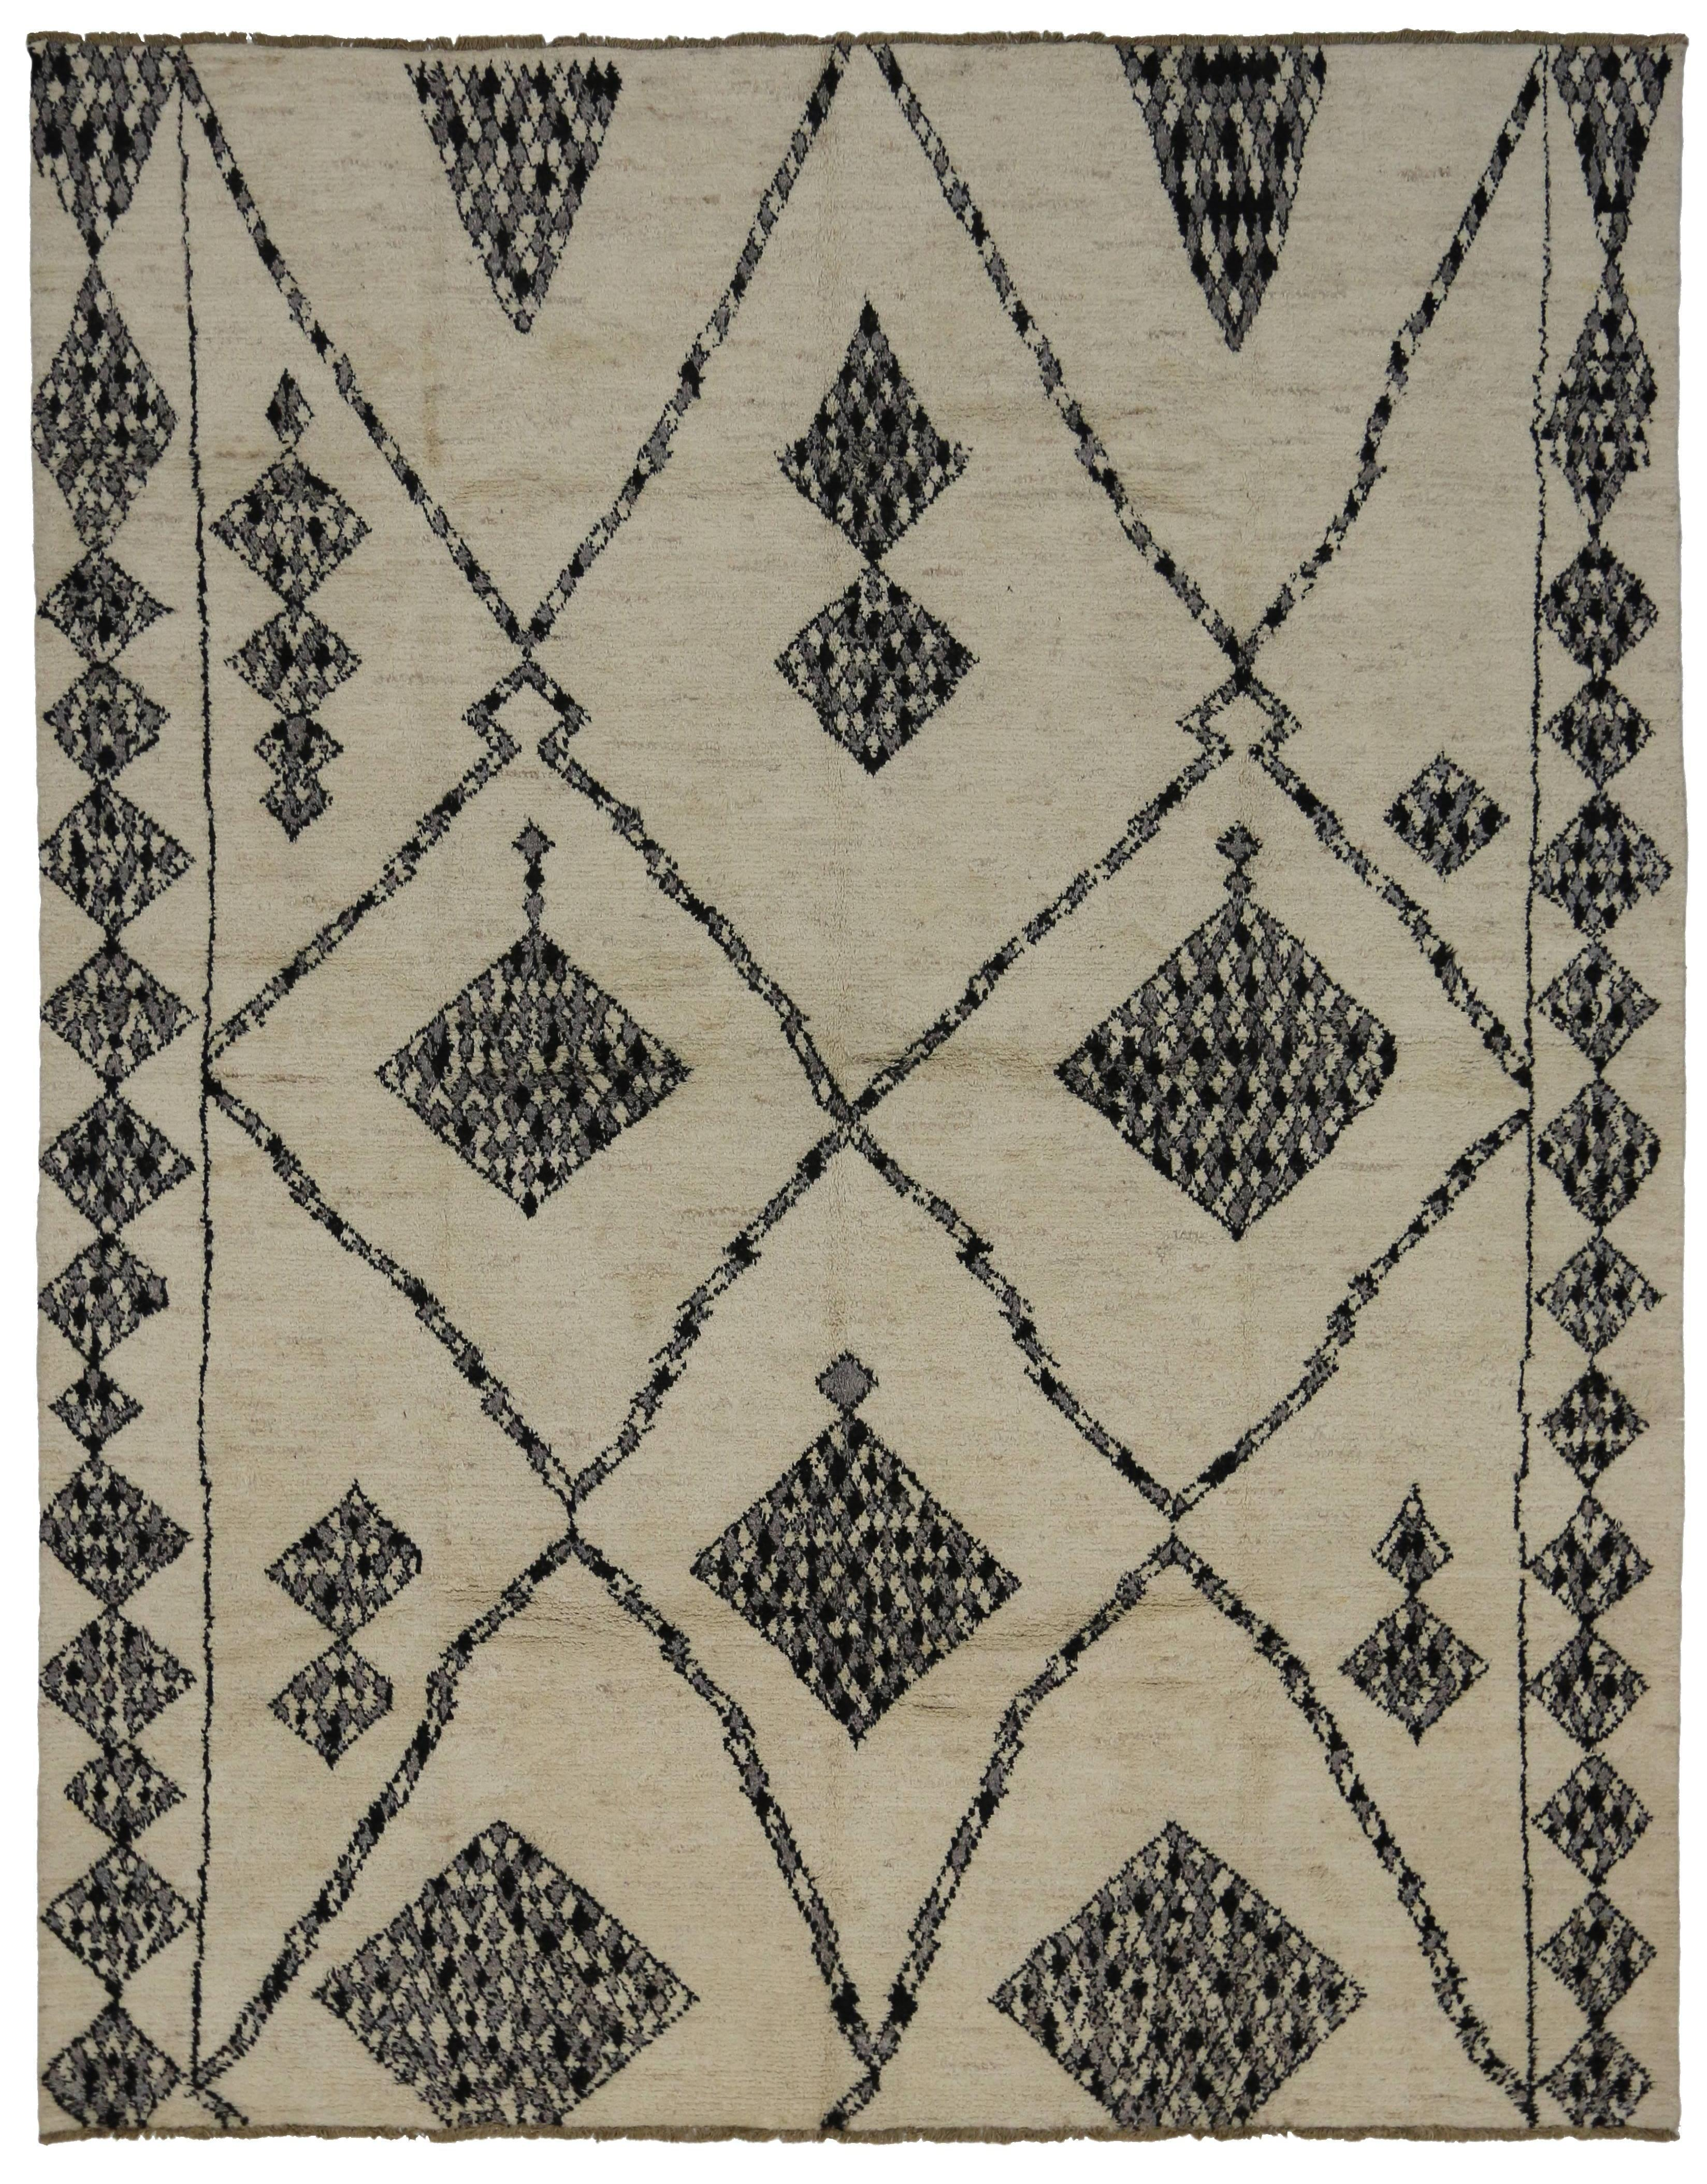 Modern Moroccan Style Rug With Contemporary Tribal Design For Sale